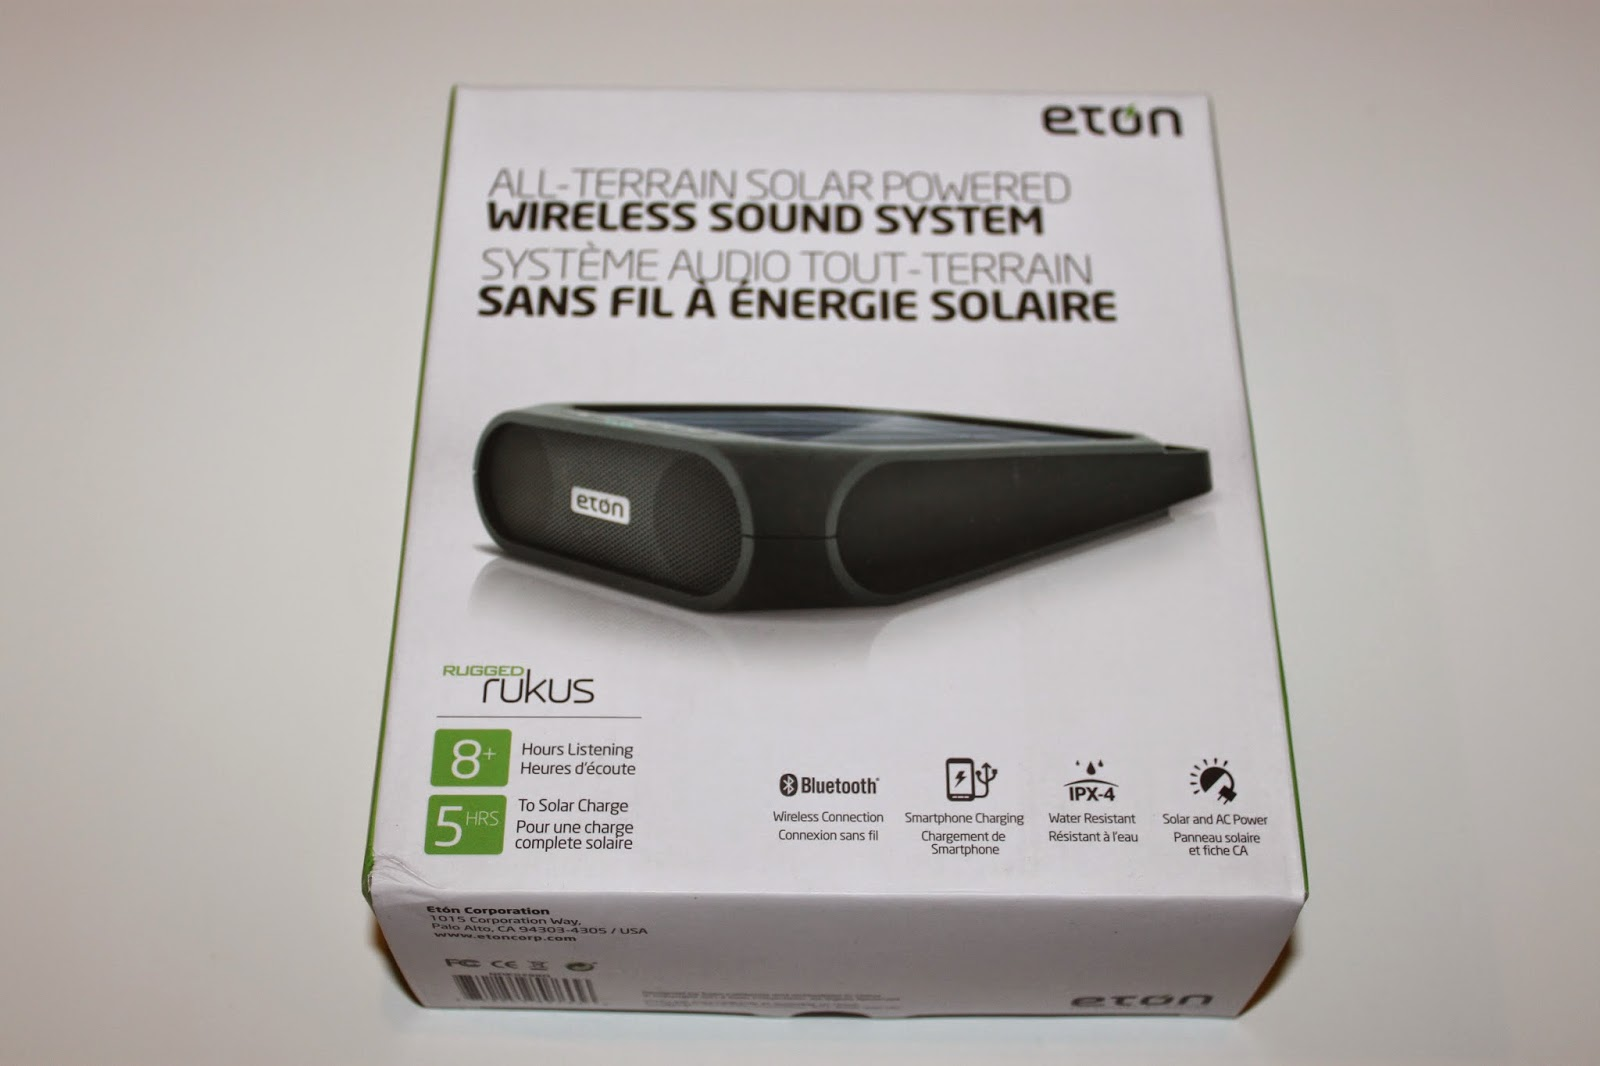 The Eton Rugged Ruckus Is Just That It Gives Great Functionality To Those On Go While A Portable Wireless Speaker System Charger As